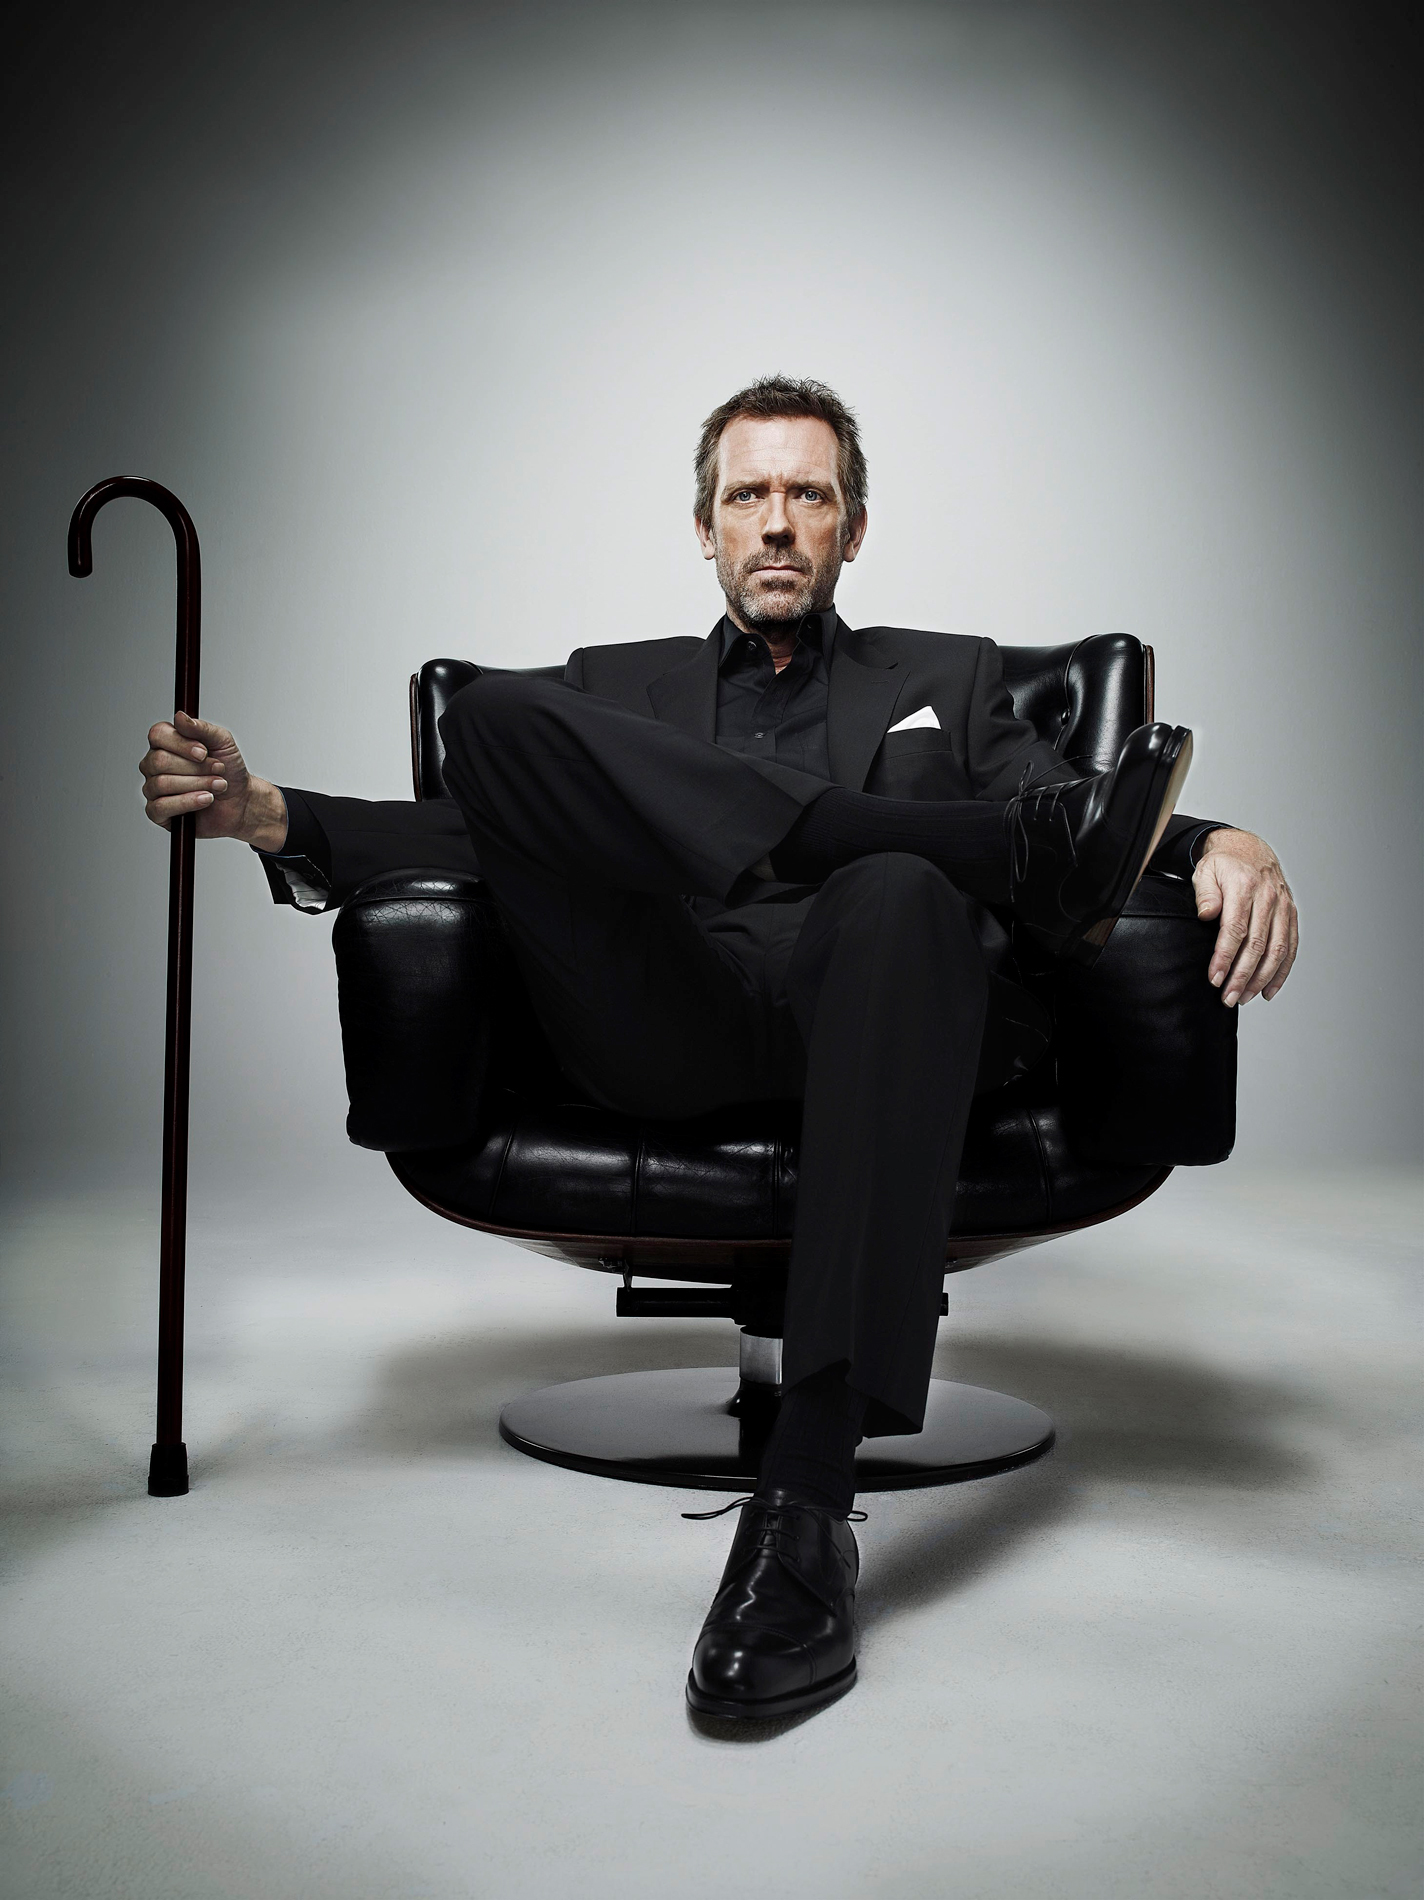 9678 download wallpaper Cinema, People, Actors, Men, House M.d., Hugh Laurie screensavers and pictures for free